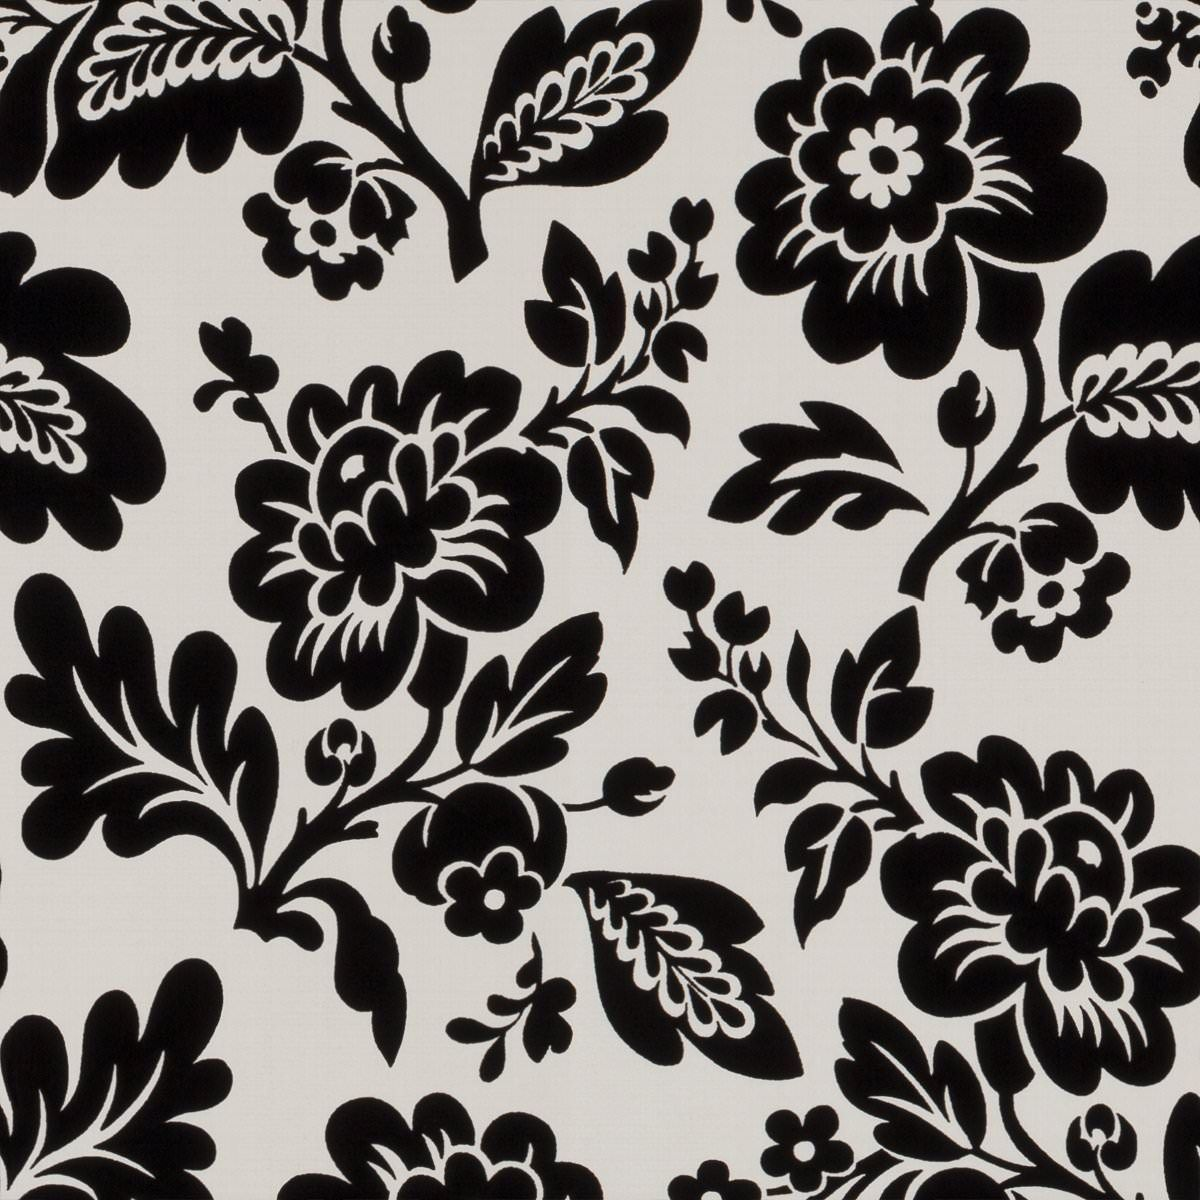 1200x1200 Black & White Floral Wallpapers | Floral Patterns ...